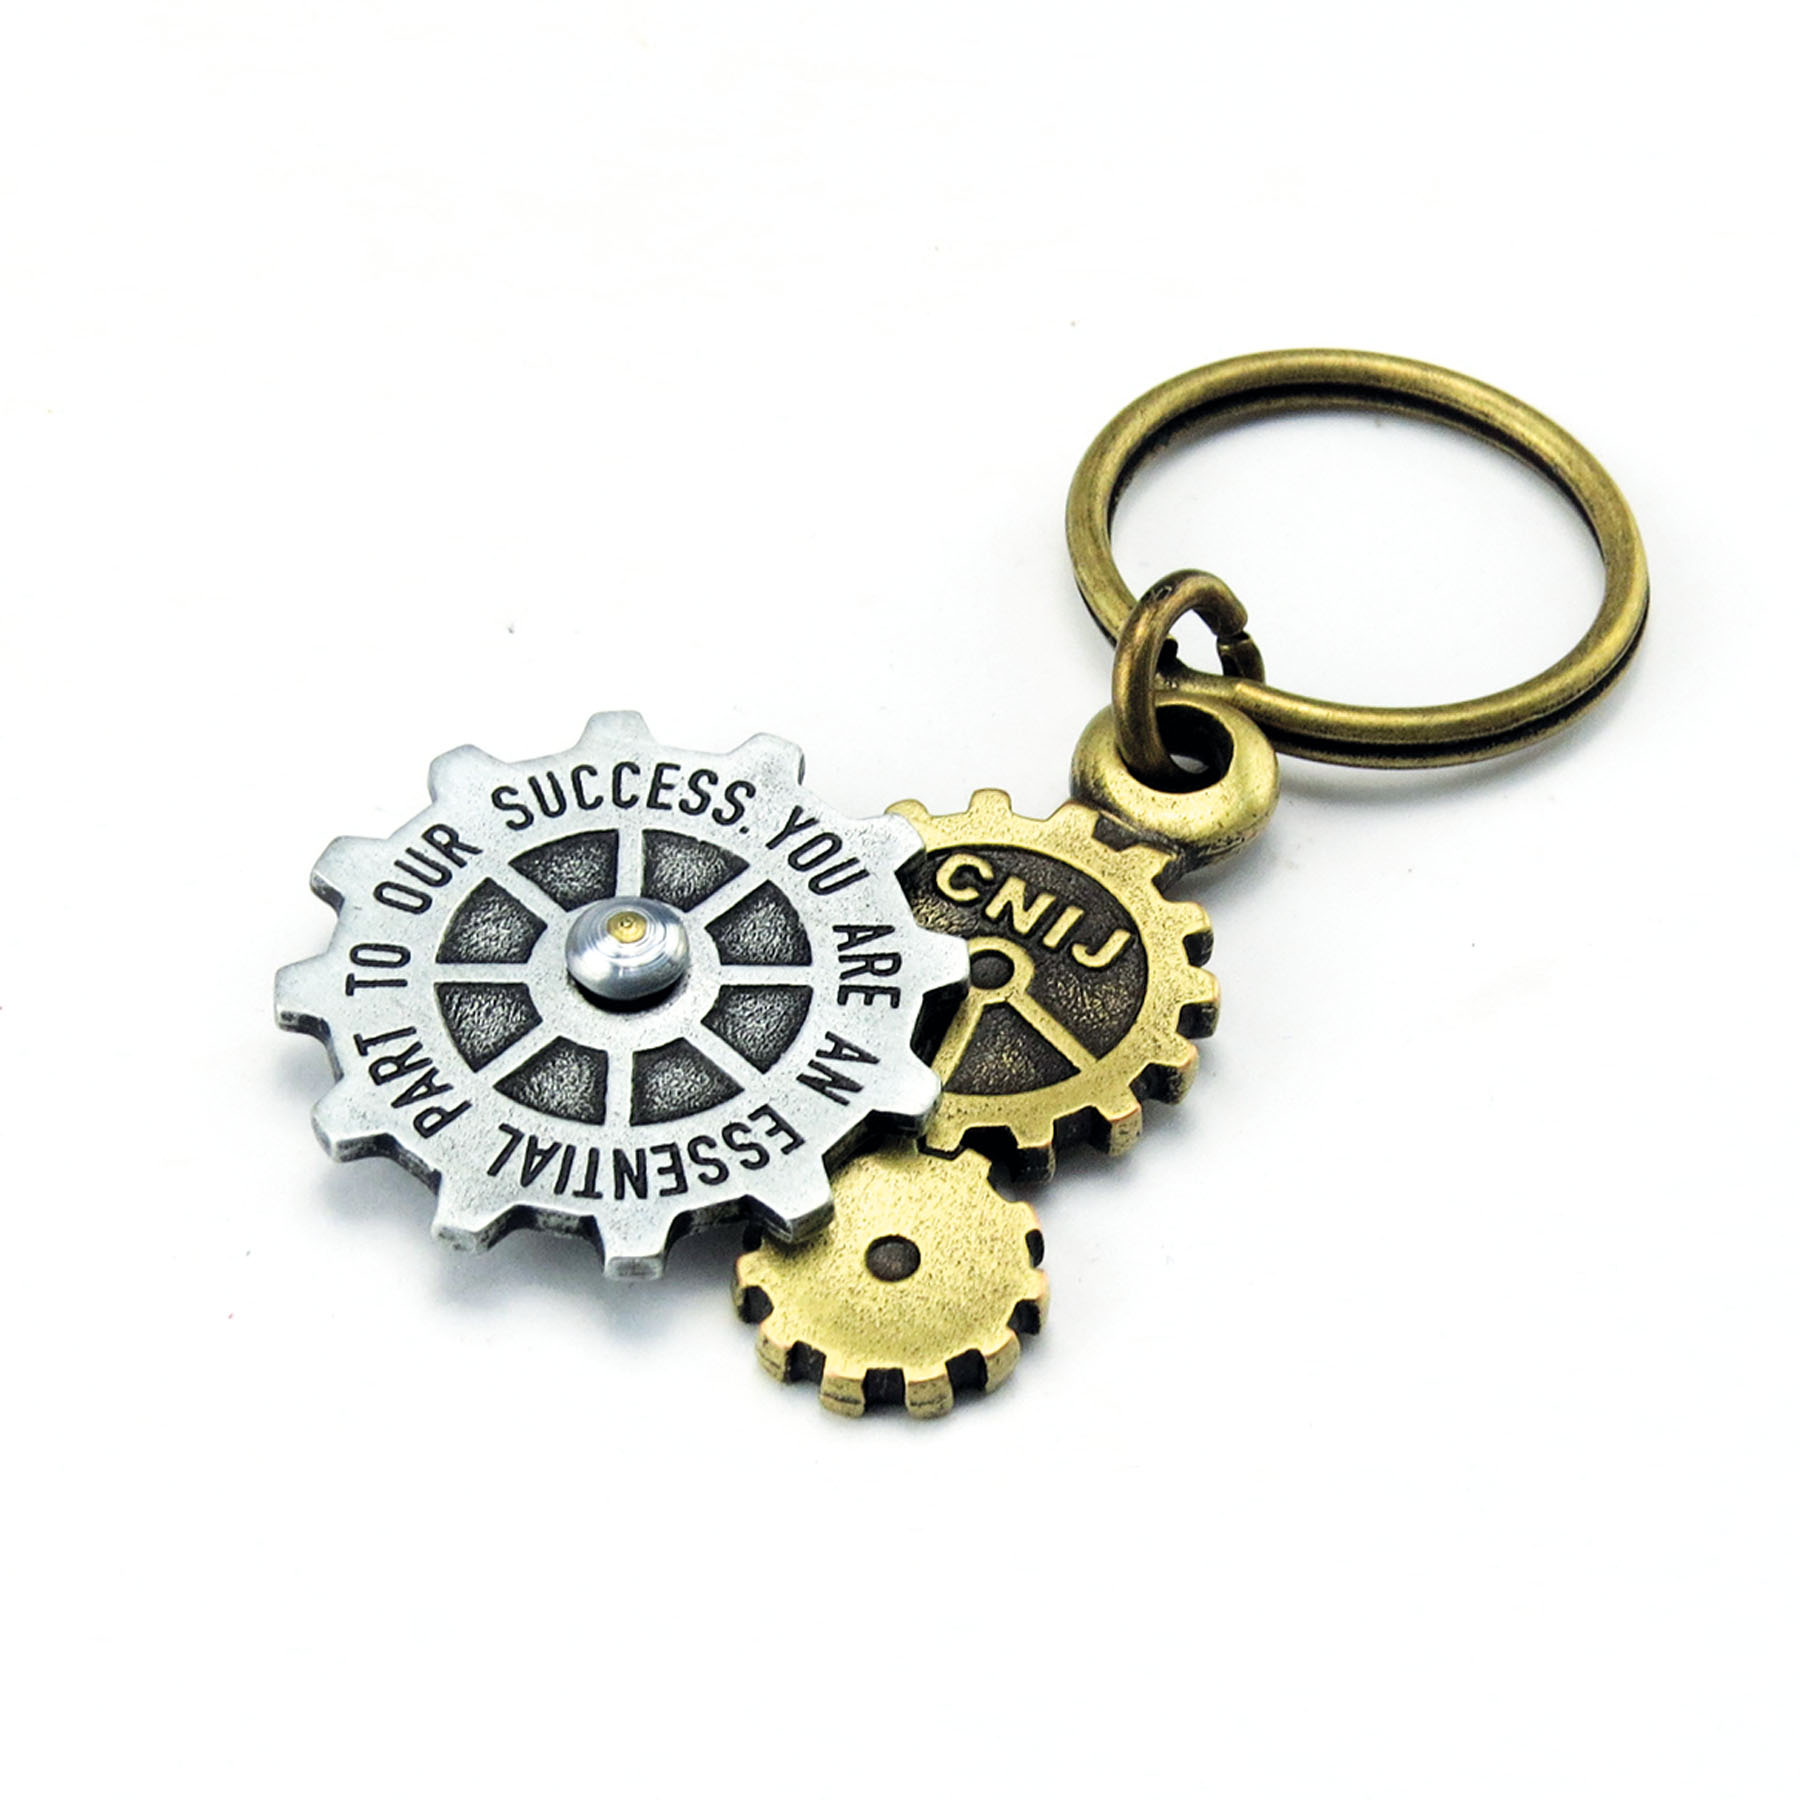 Spinning Key Chains